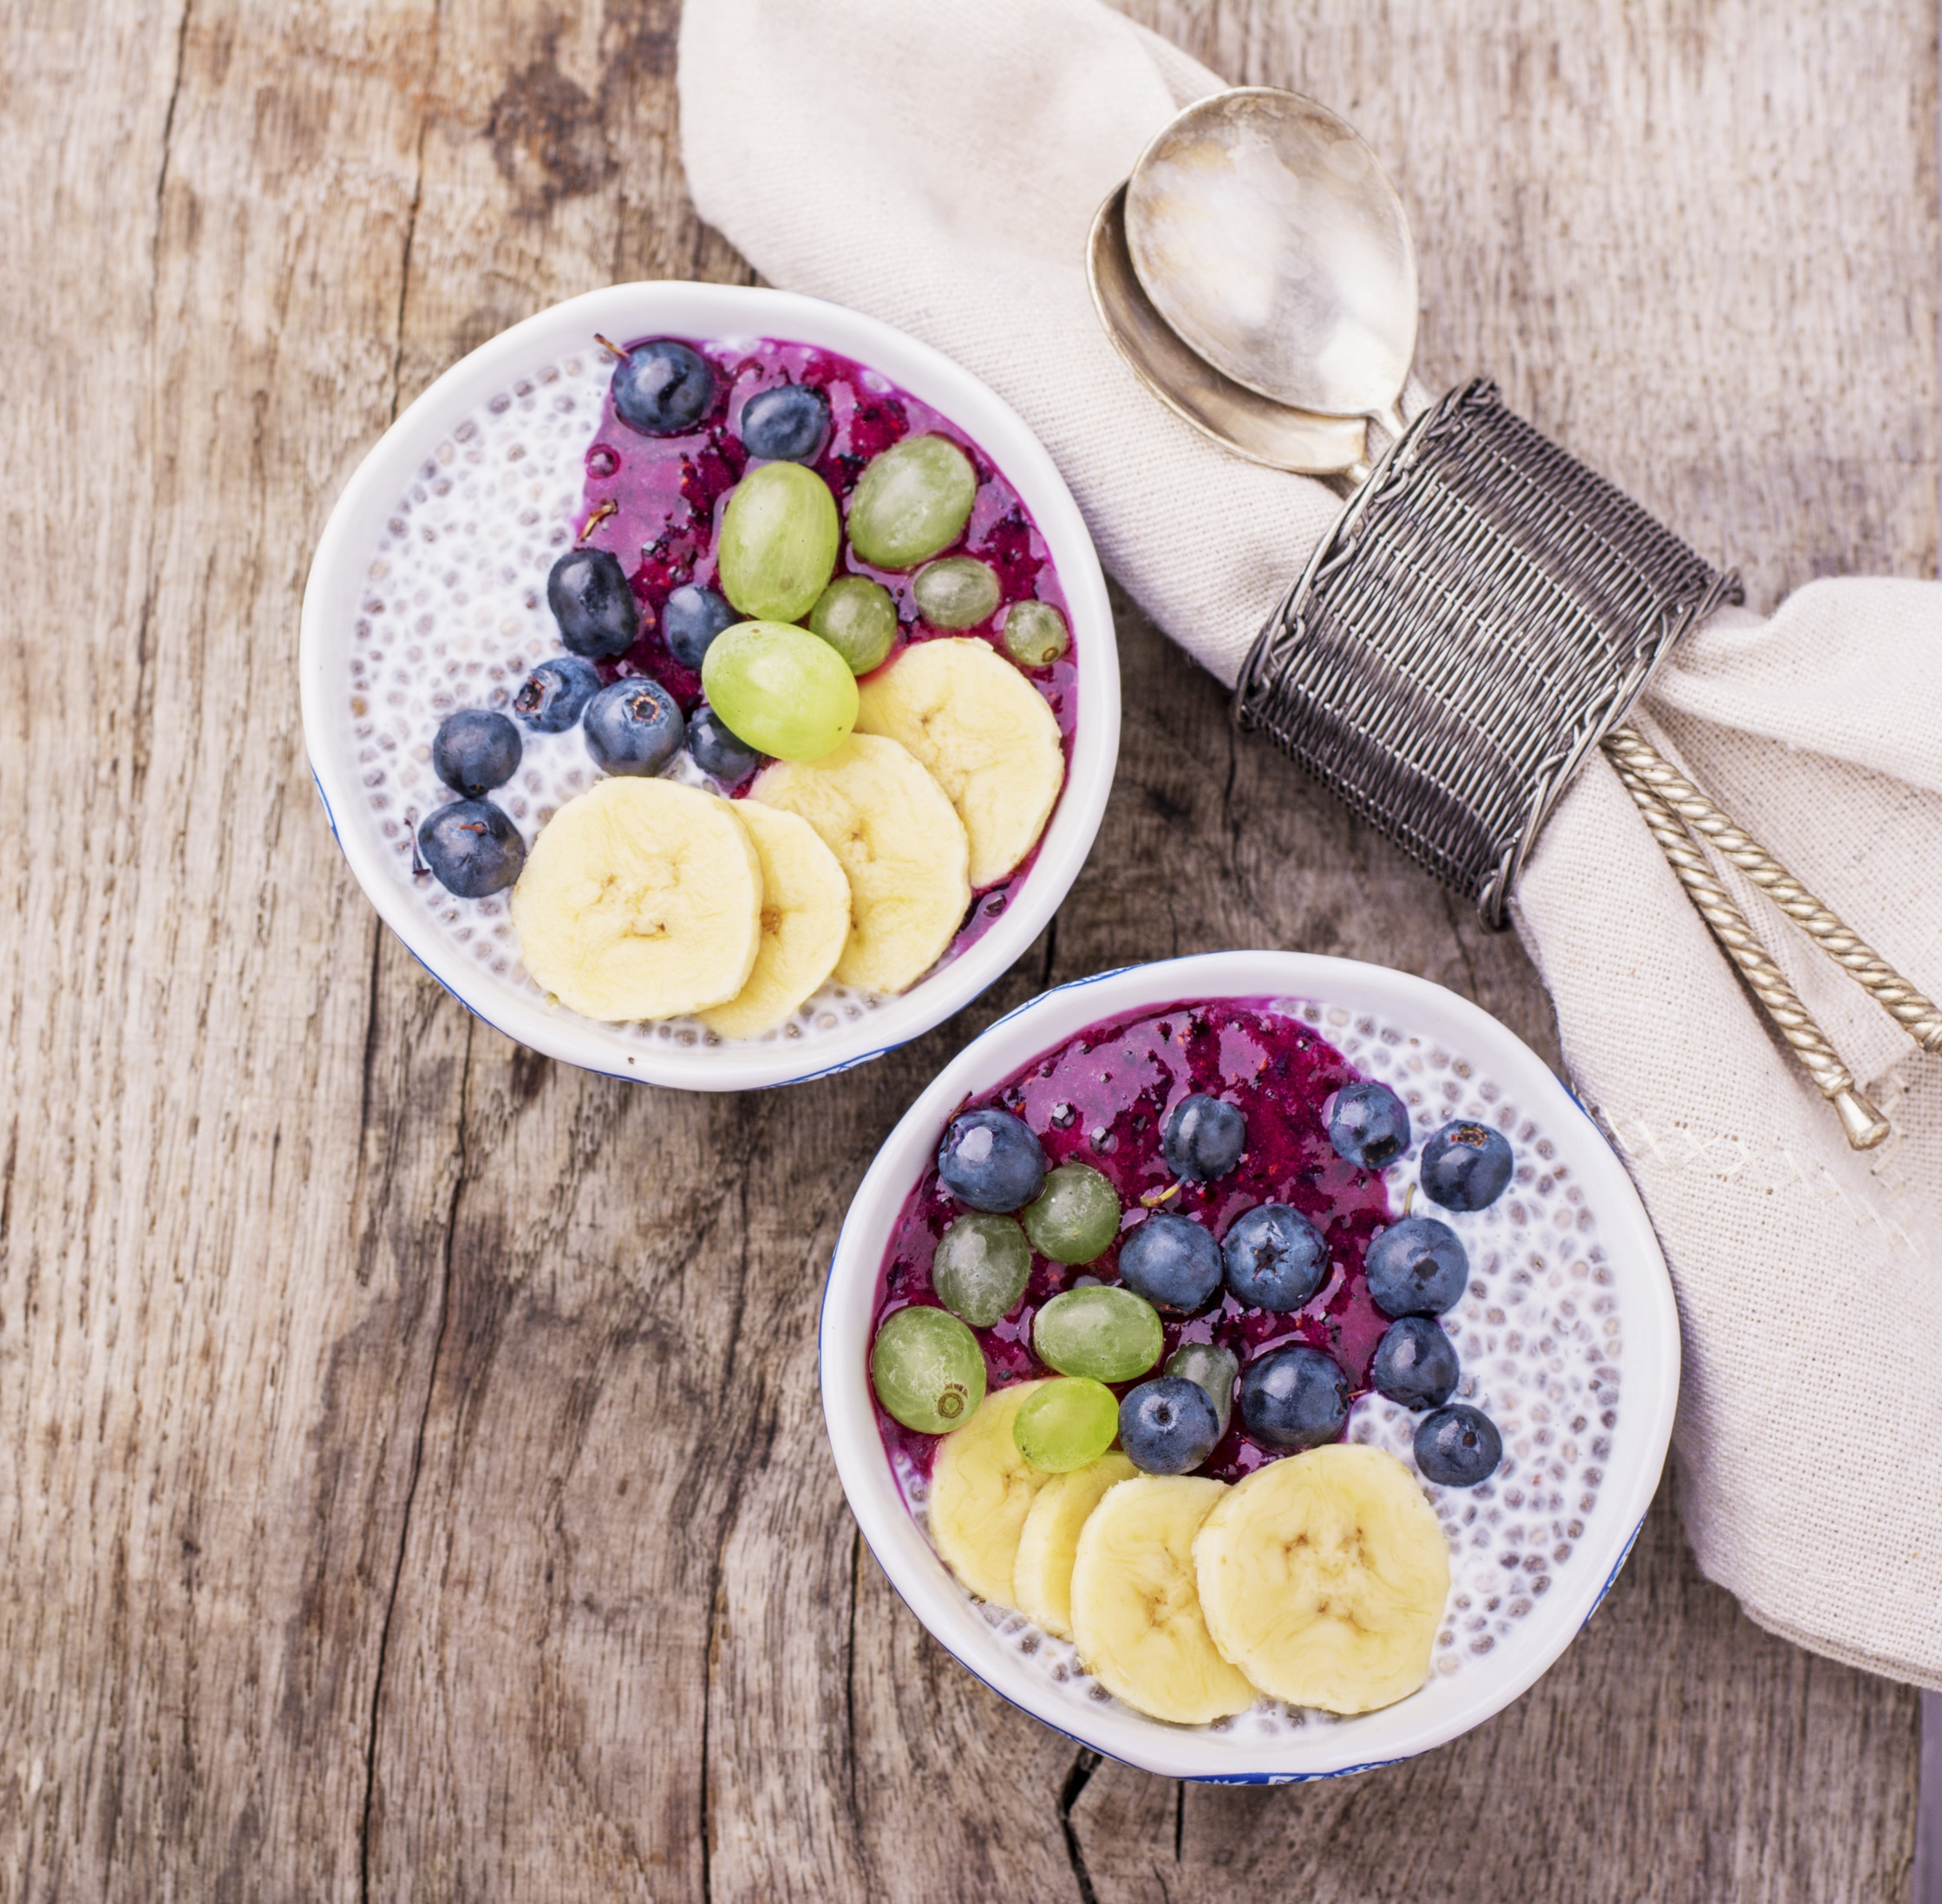 Chia Pudding for breakfast in bowls garnished with berry smoothies, grapes, petals of almond and blueberry in two portions on a wooden background with a napkin and spoon. Top view. selective Focus